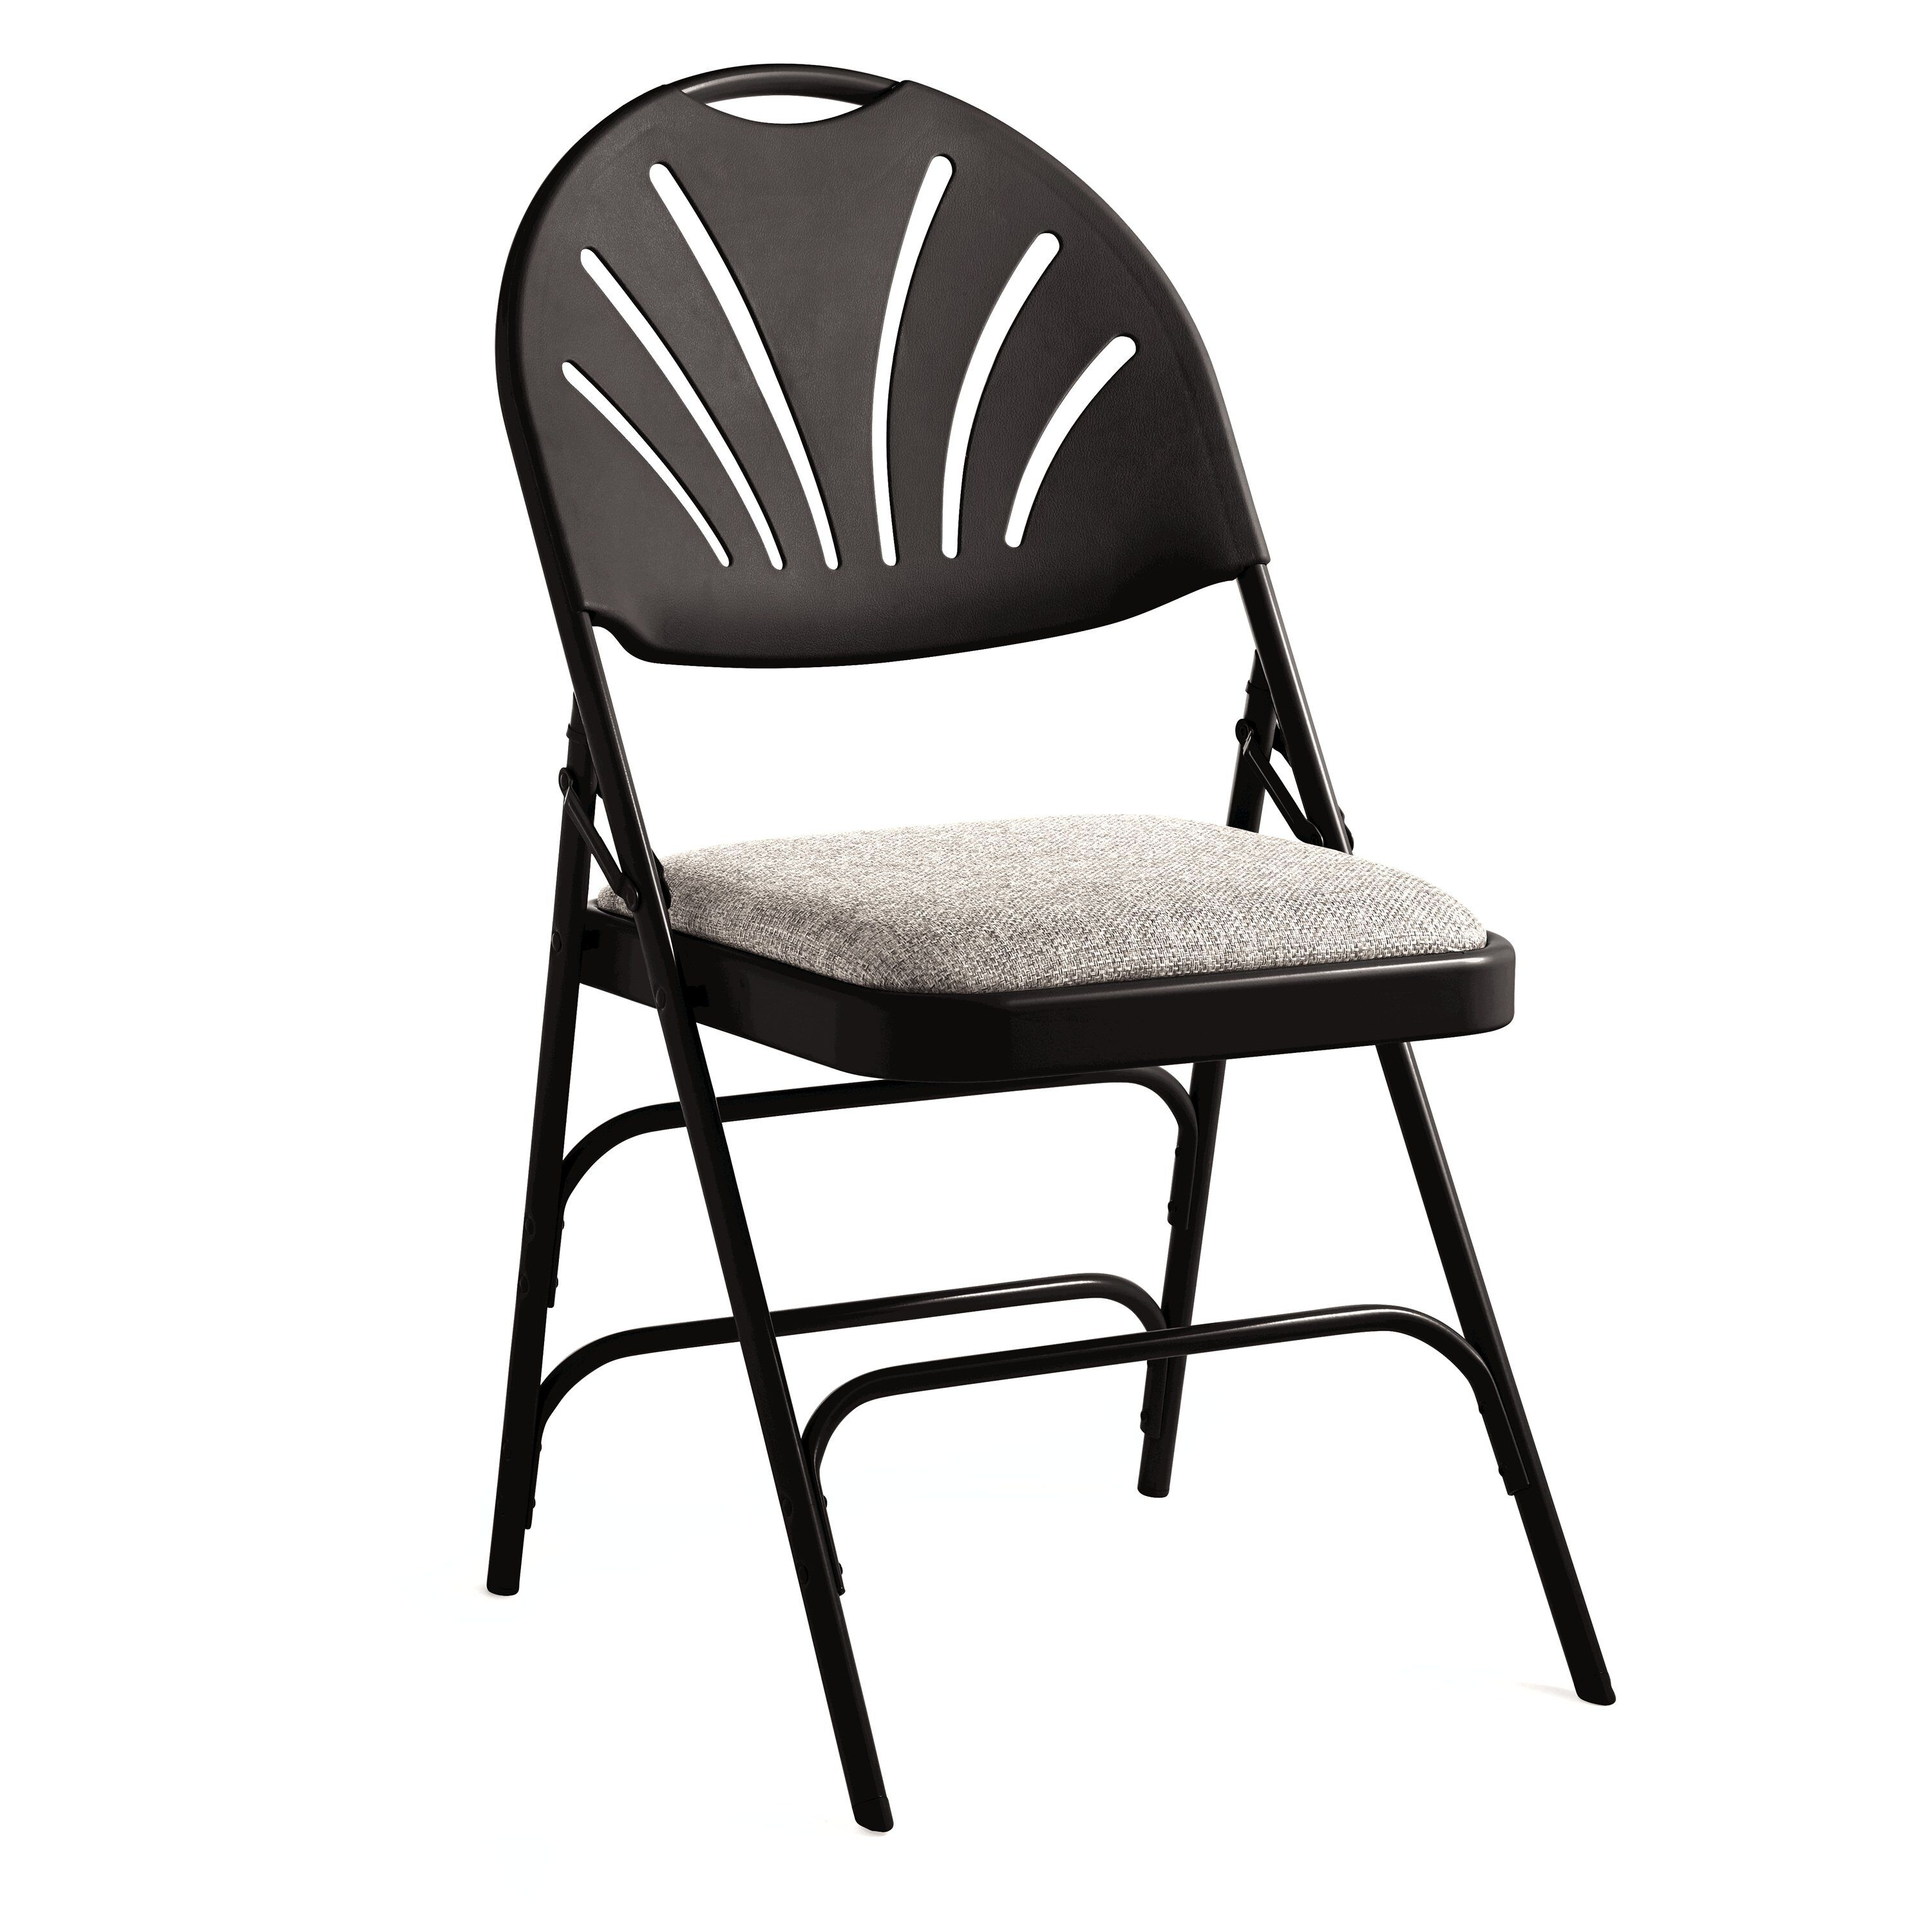 folding chair outlet office in chennai samsonite xl fanback steel and fabric case 4